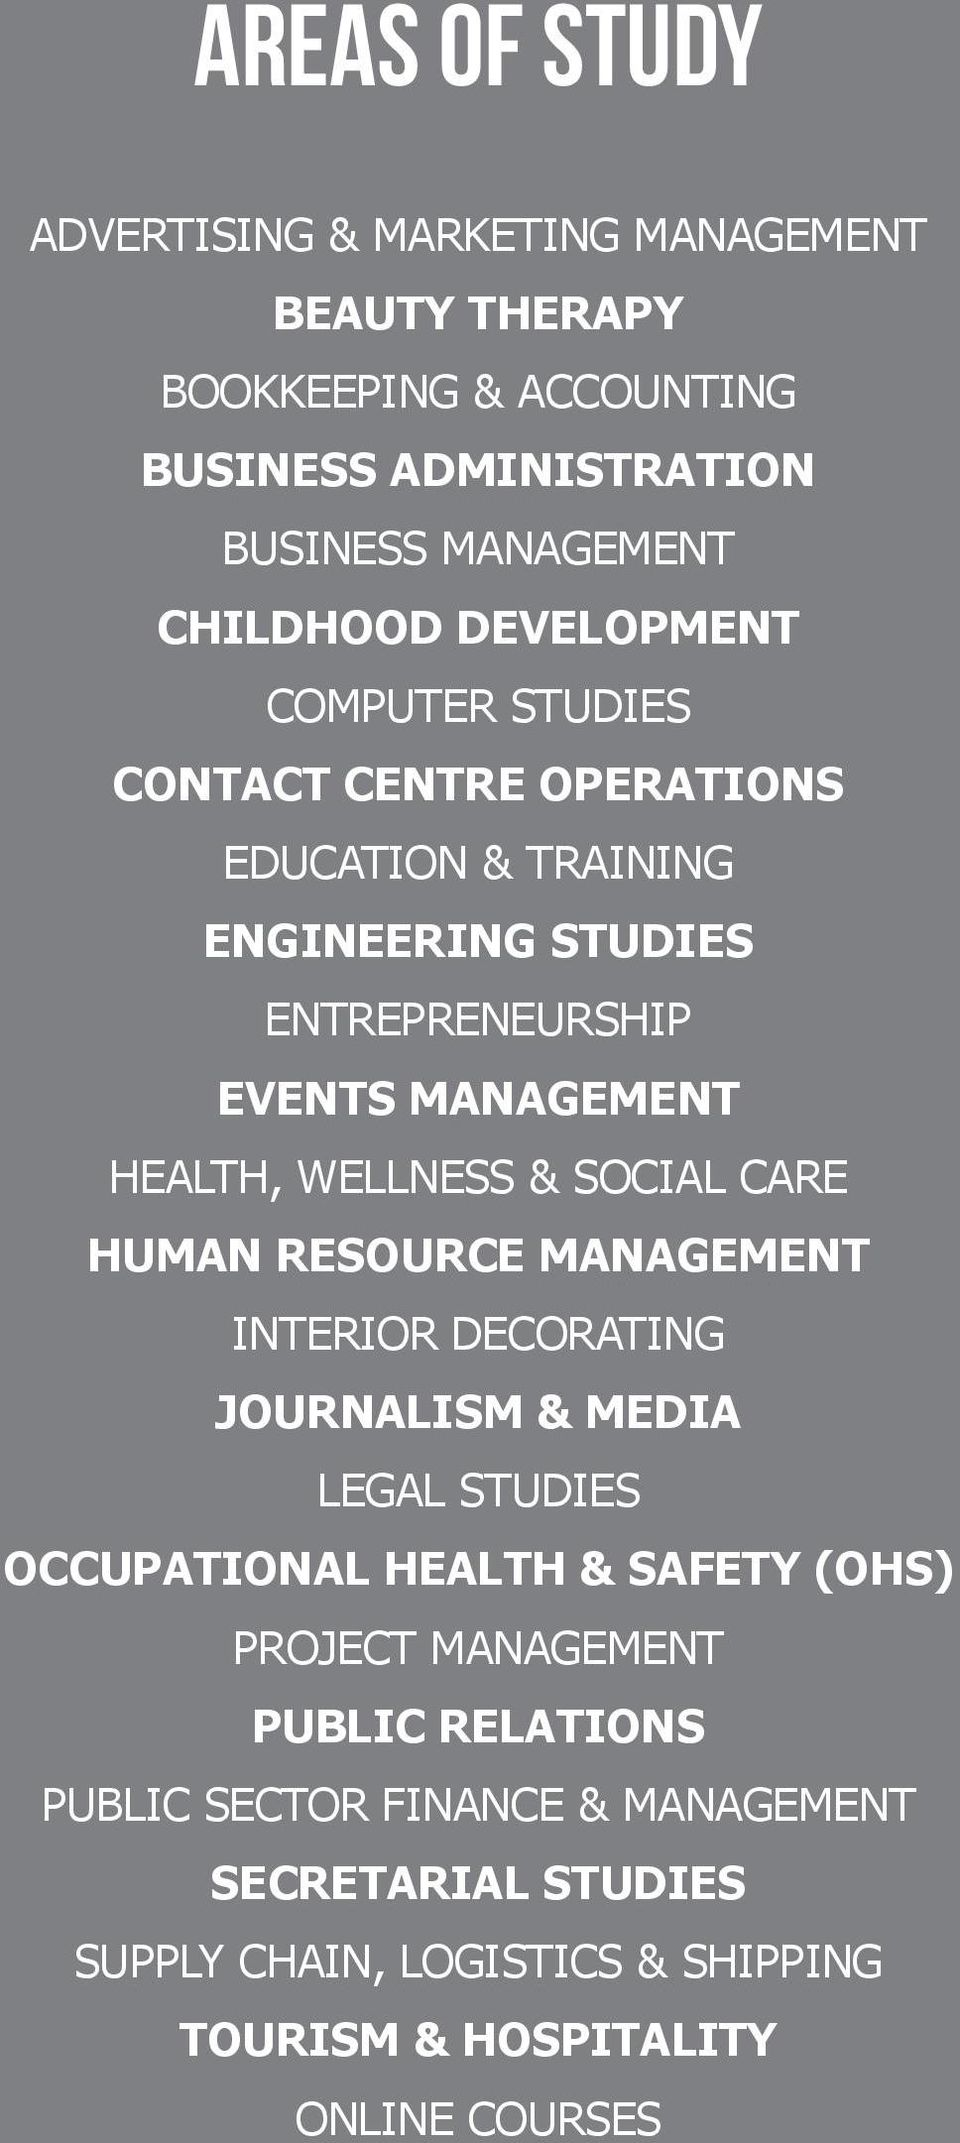 WELLNESS & SOCIAL CARE HUMAN RESOURCE MANAGEMENT INTERIOR DECORATING JOURNALISM & MEDIA LEGAL STUDIES OCCUPATIONAL HEALTH & SAFETY (OHS) PROJECT